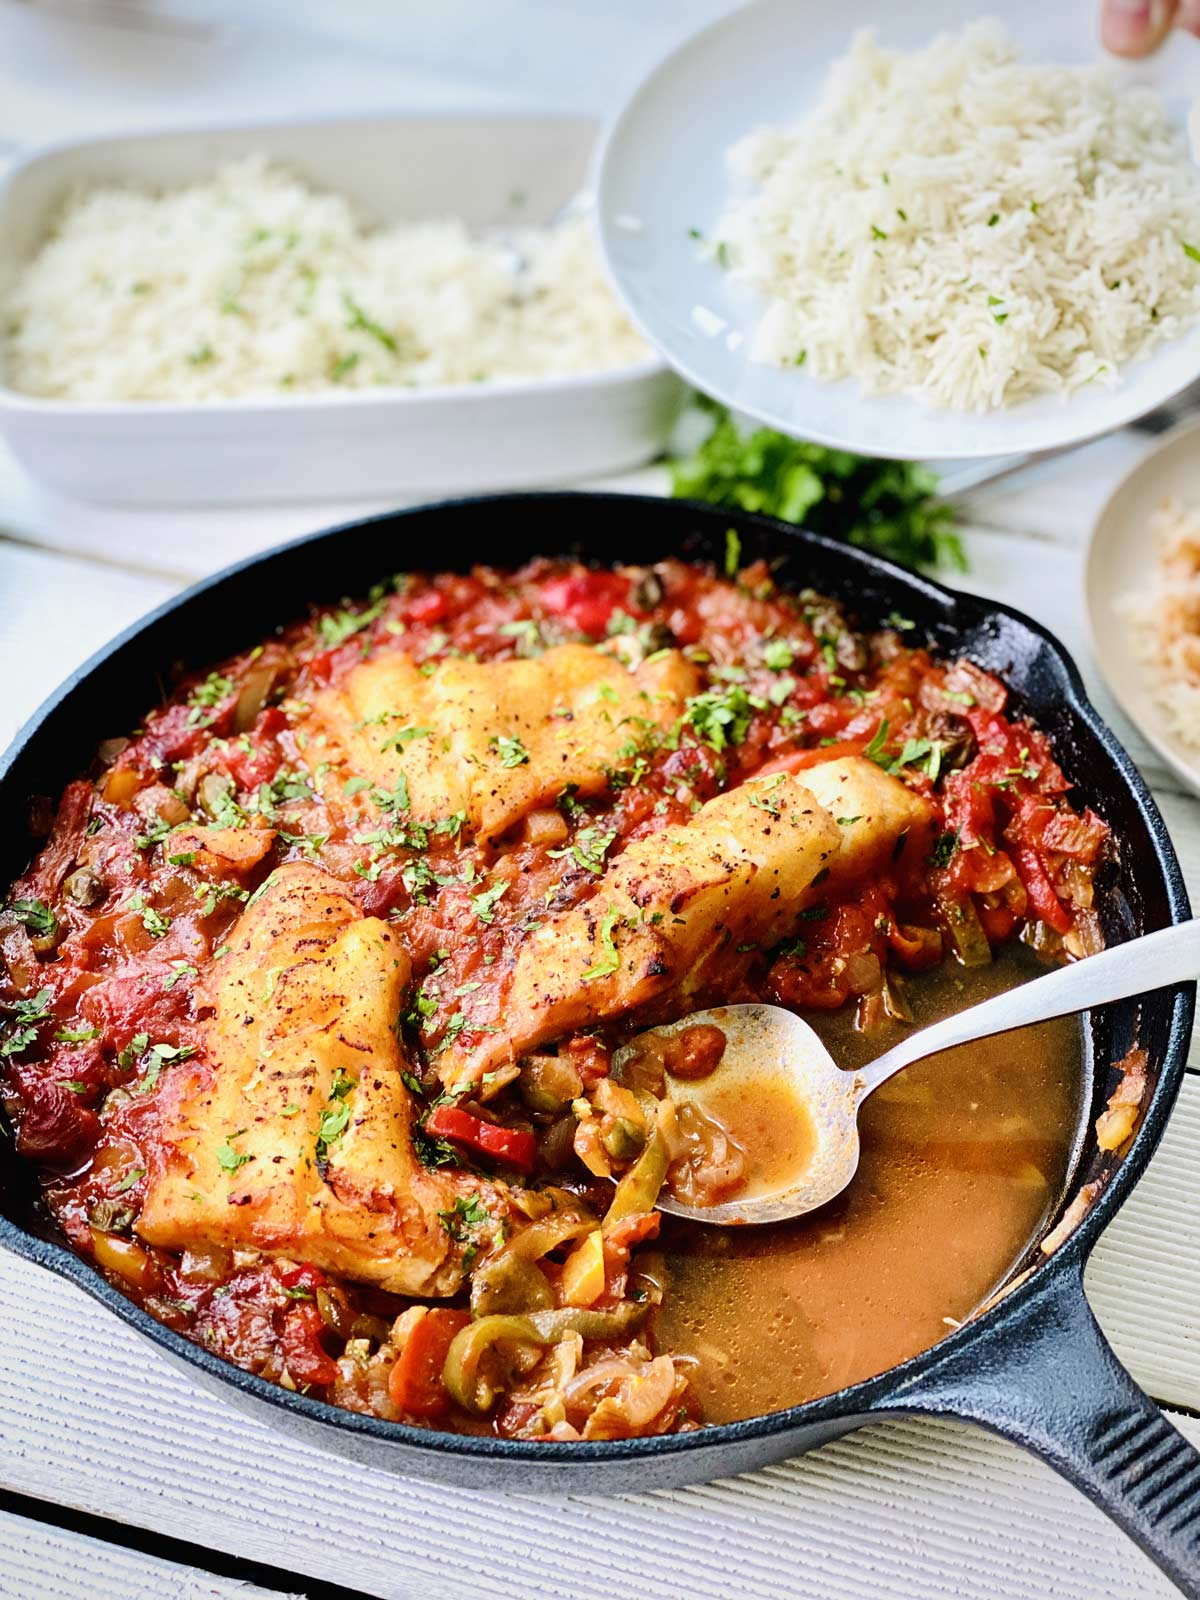 Baked Cod Recipe with tomato sauce